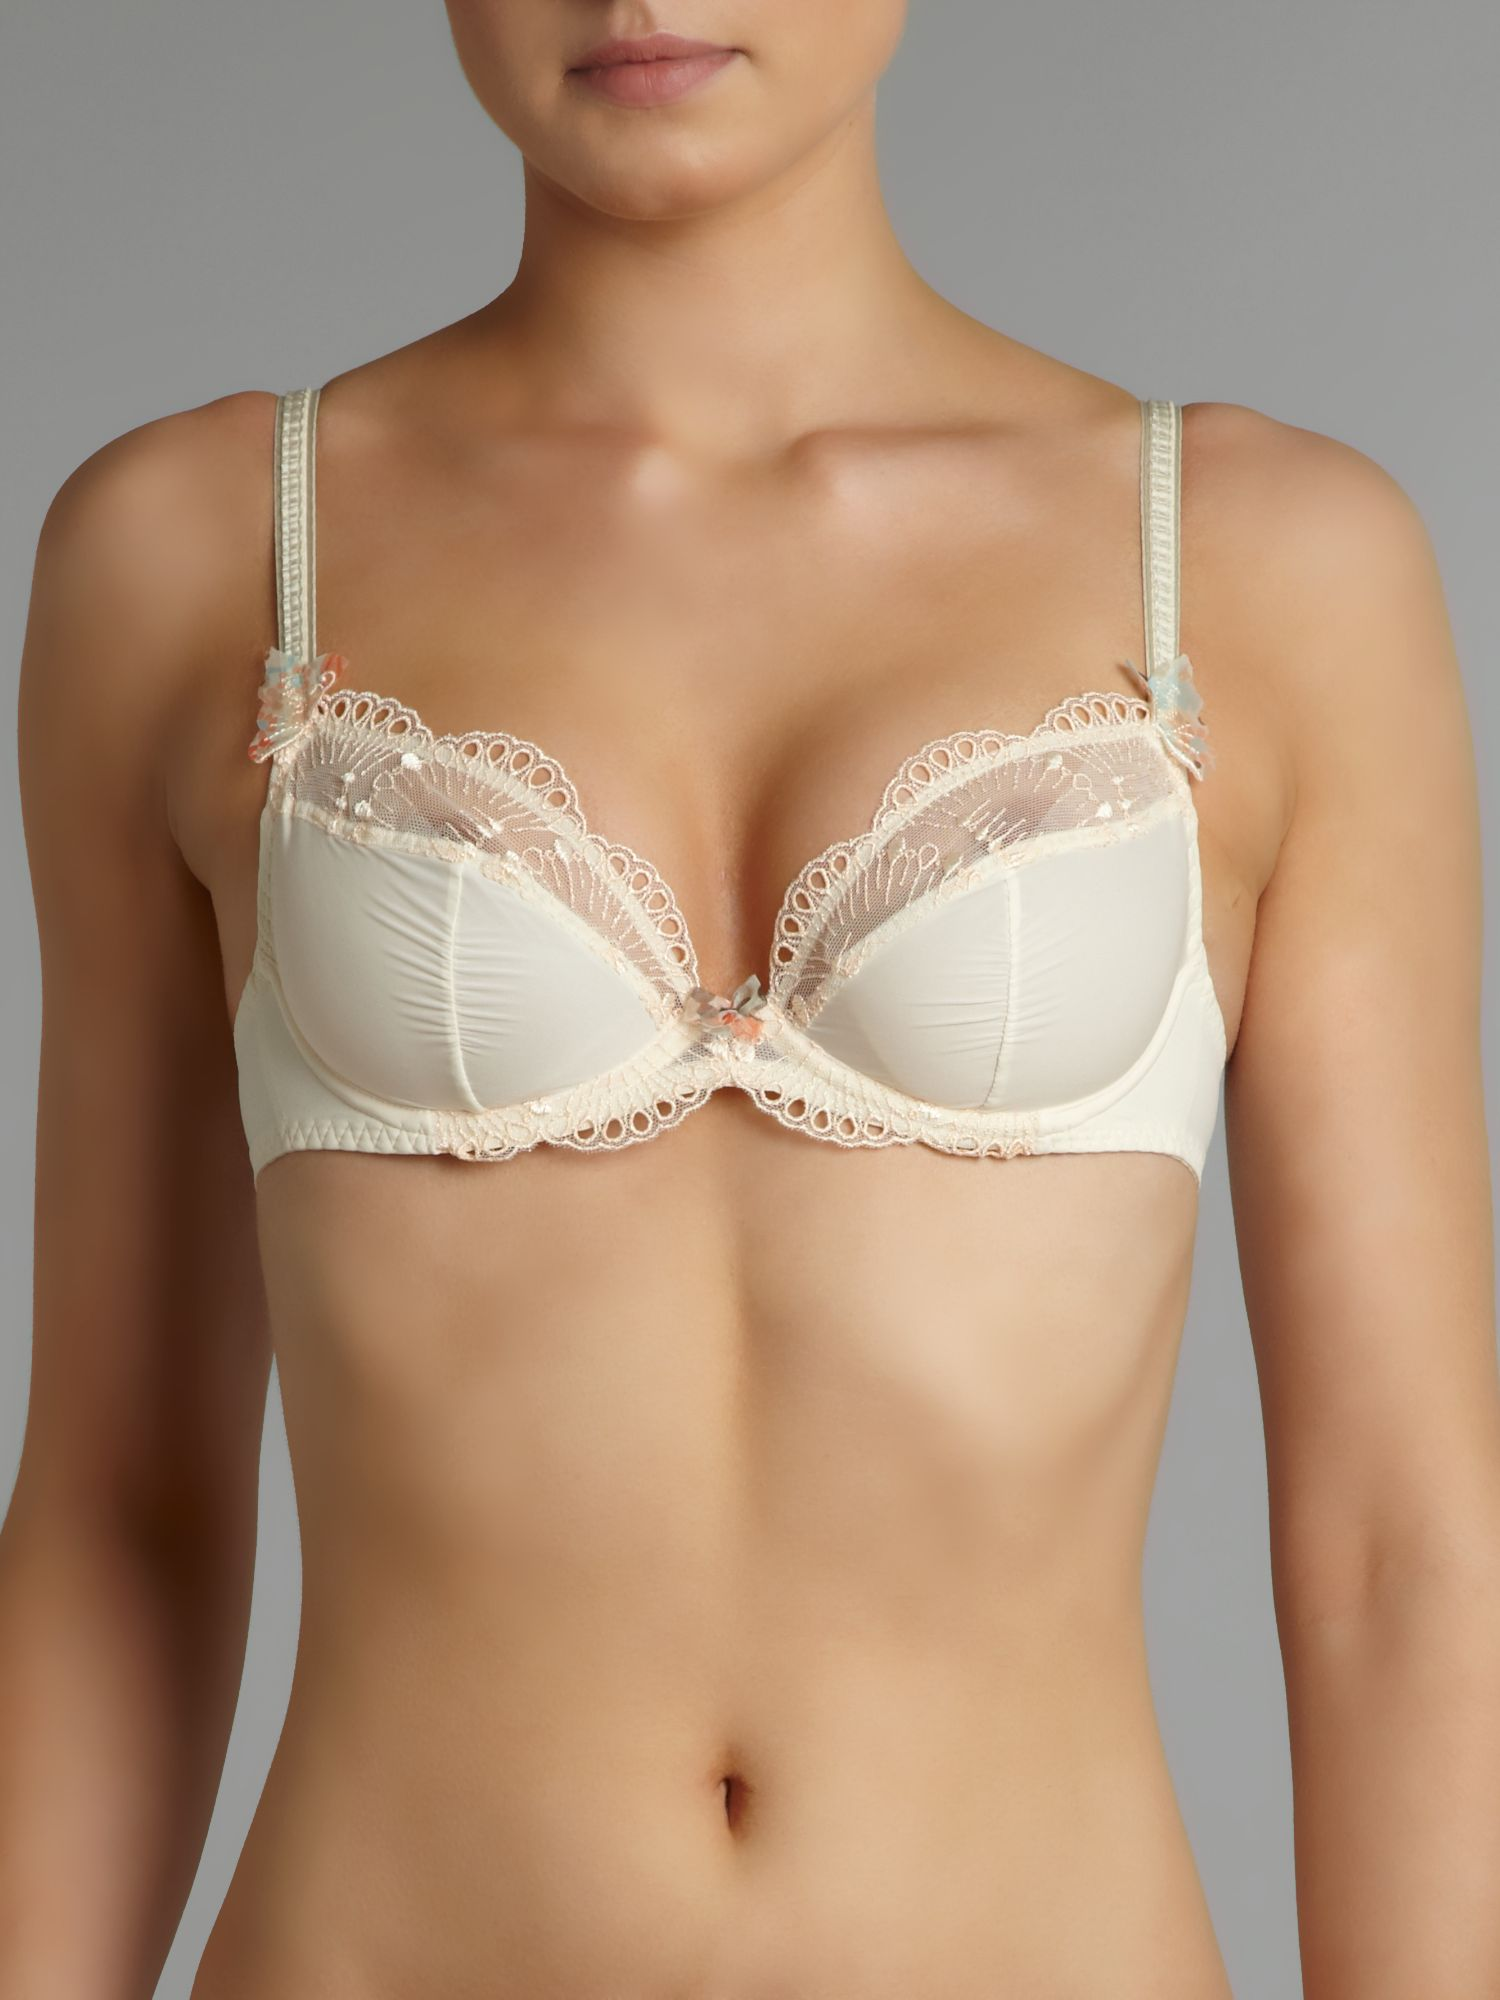 Envolee 3 section balconette bra